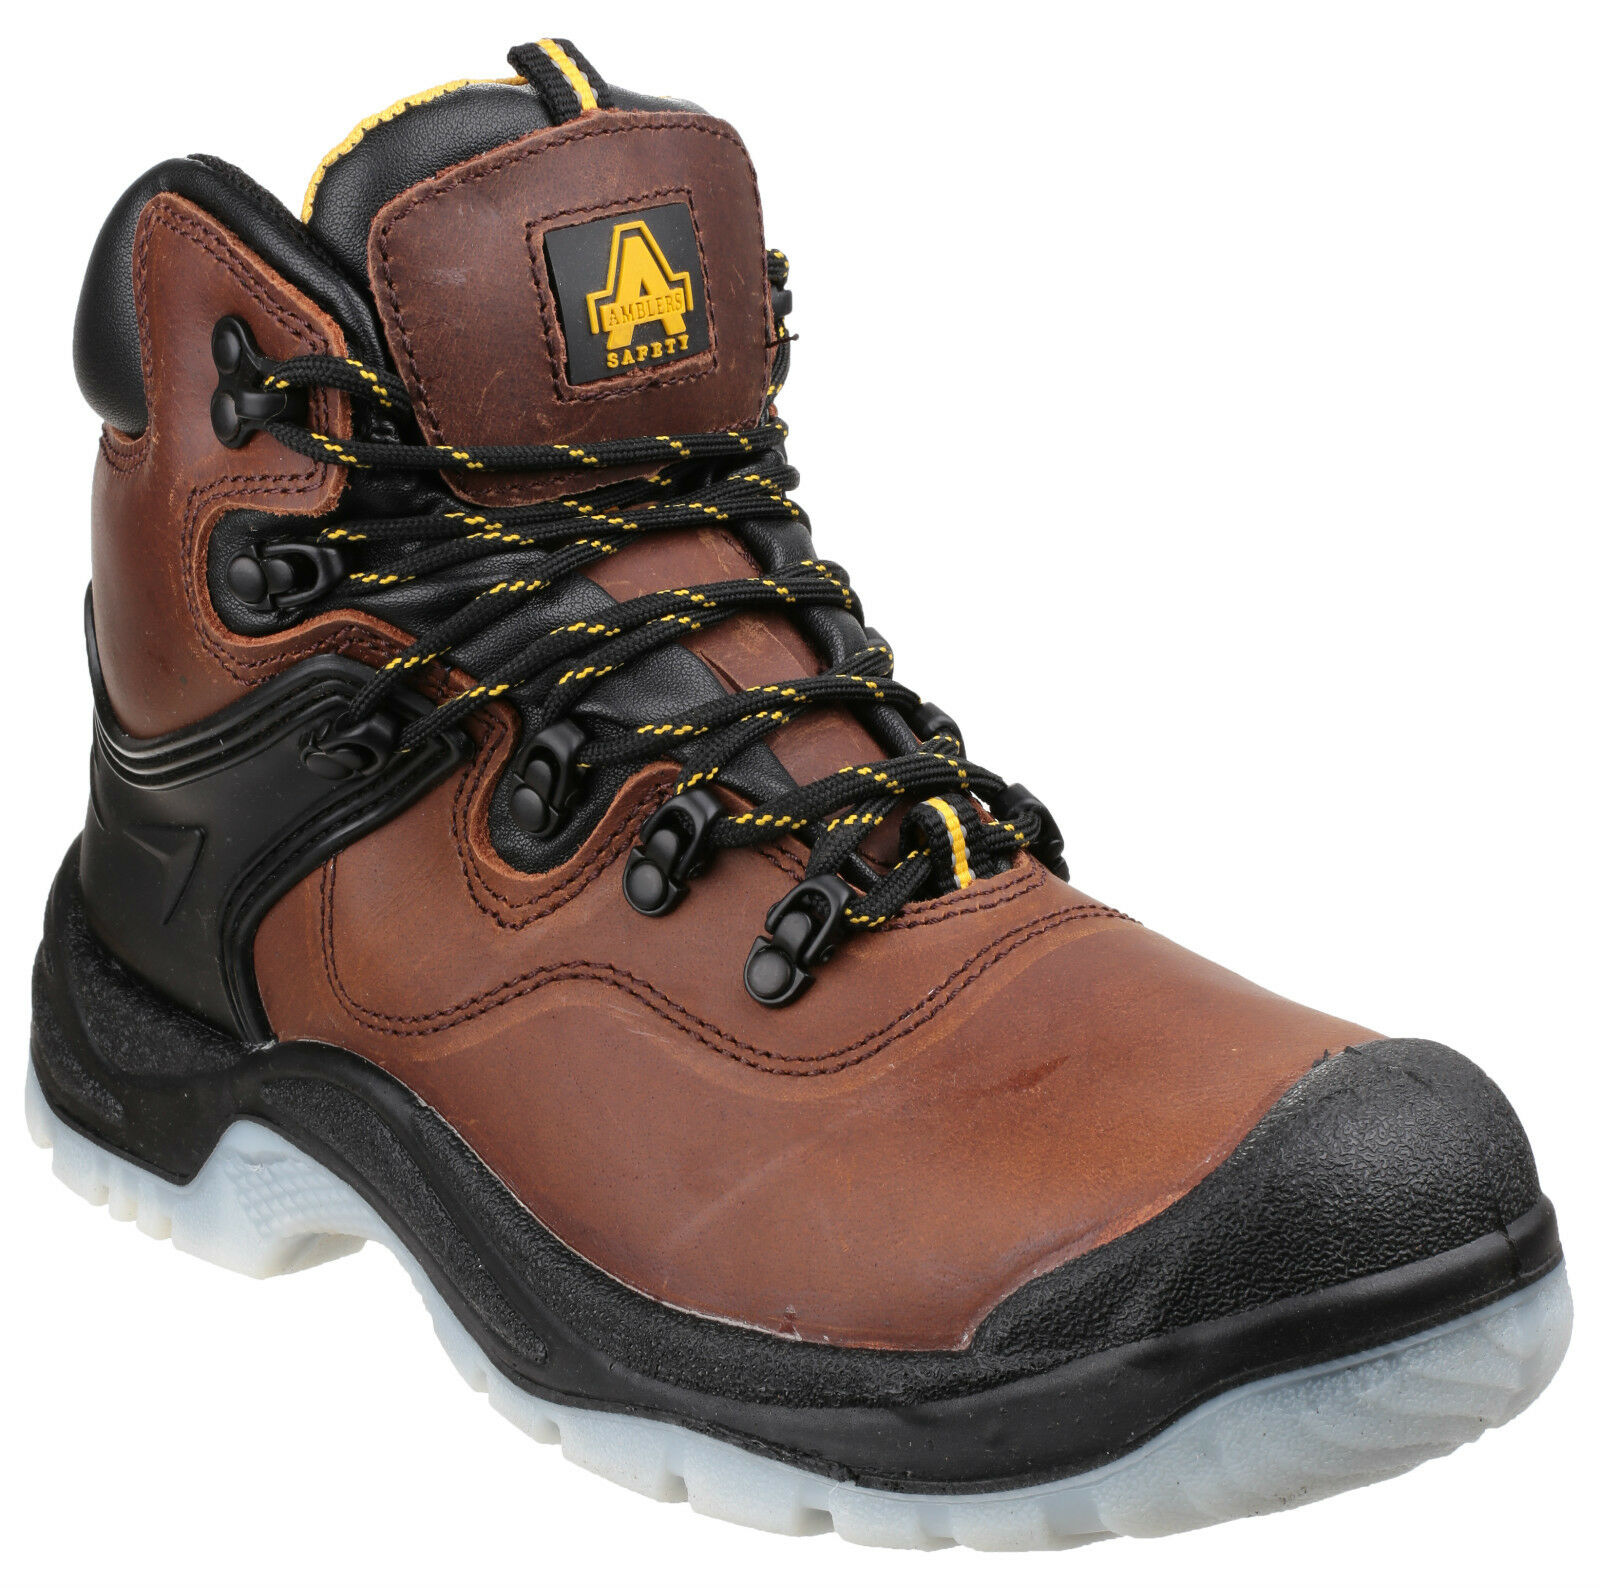 Amblers FS197 Waterproof Safety Boots Mens Brown Steel Toe Cap shoes UK4-14